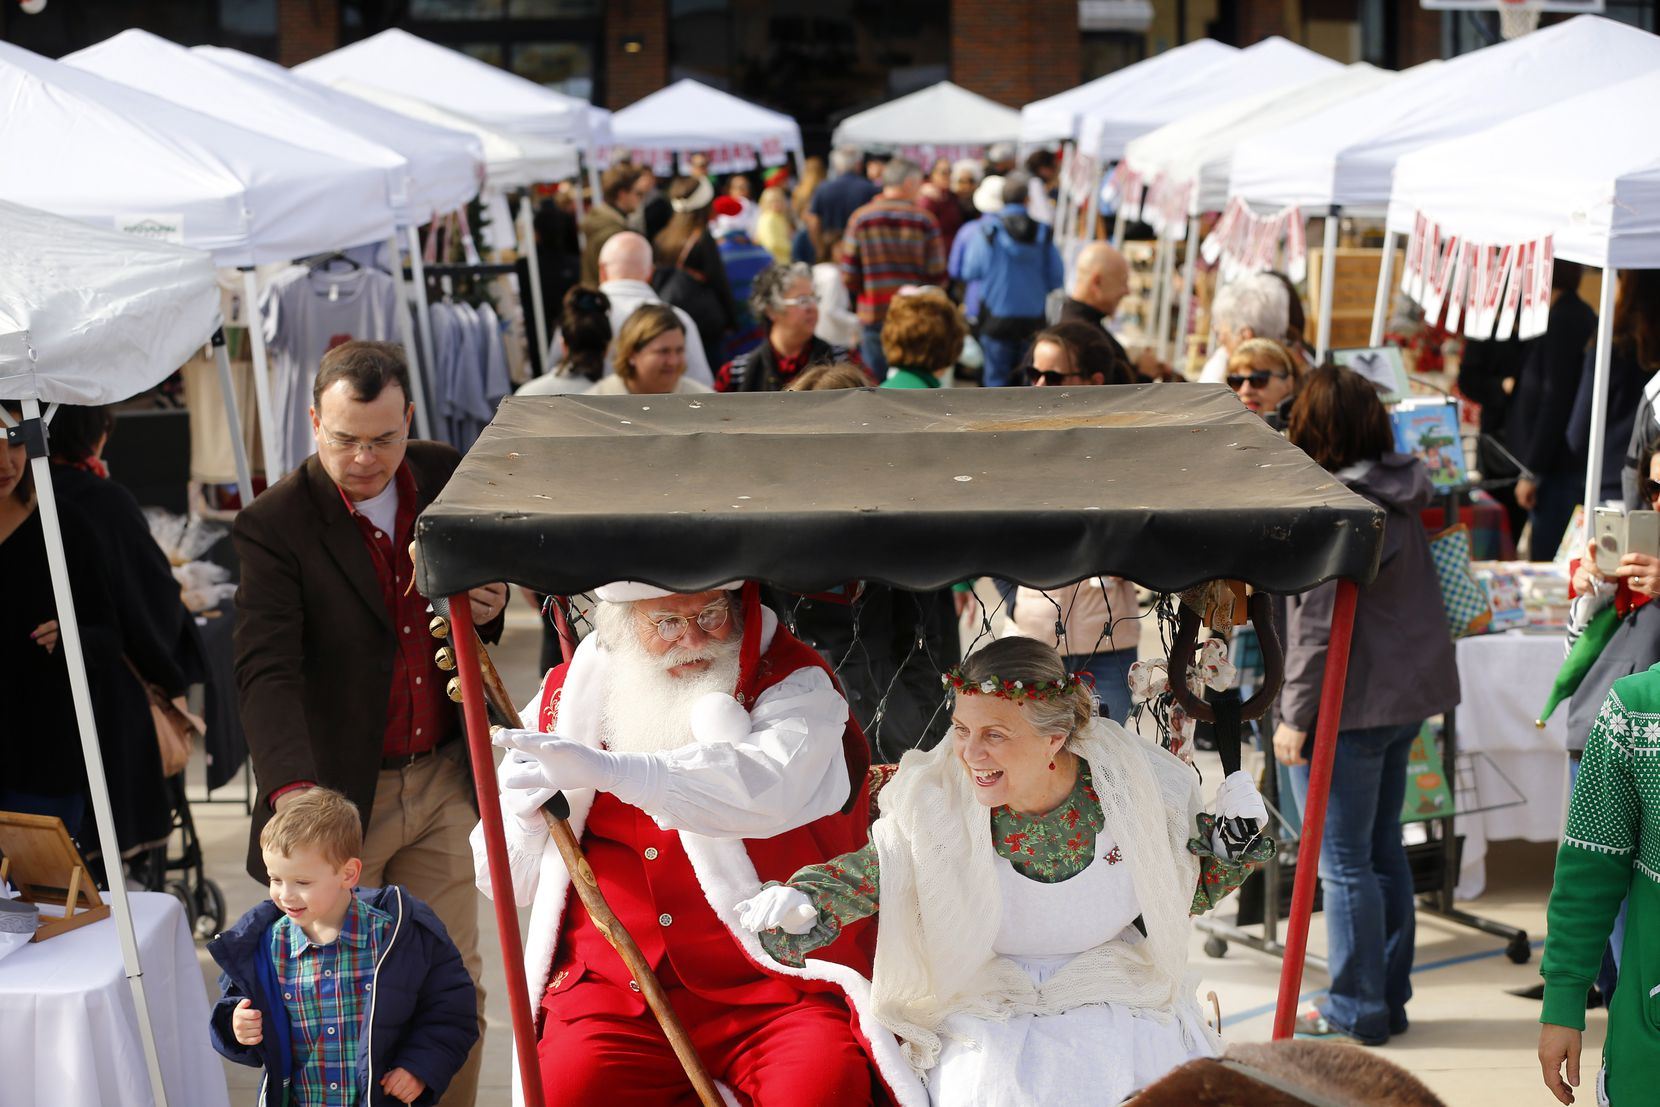 Santa and Mrs. Claus ride in a pony-drawn carriage around Marché de Noël , an annual French Christmas market. This year's festival is Dec. 8.